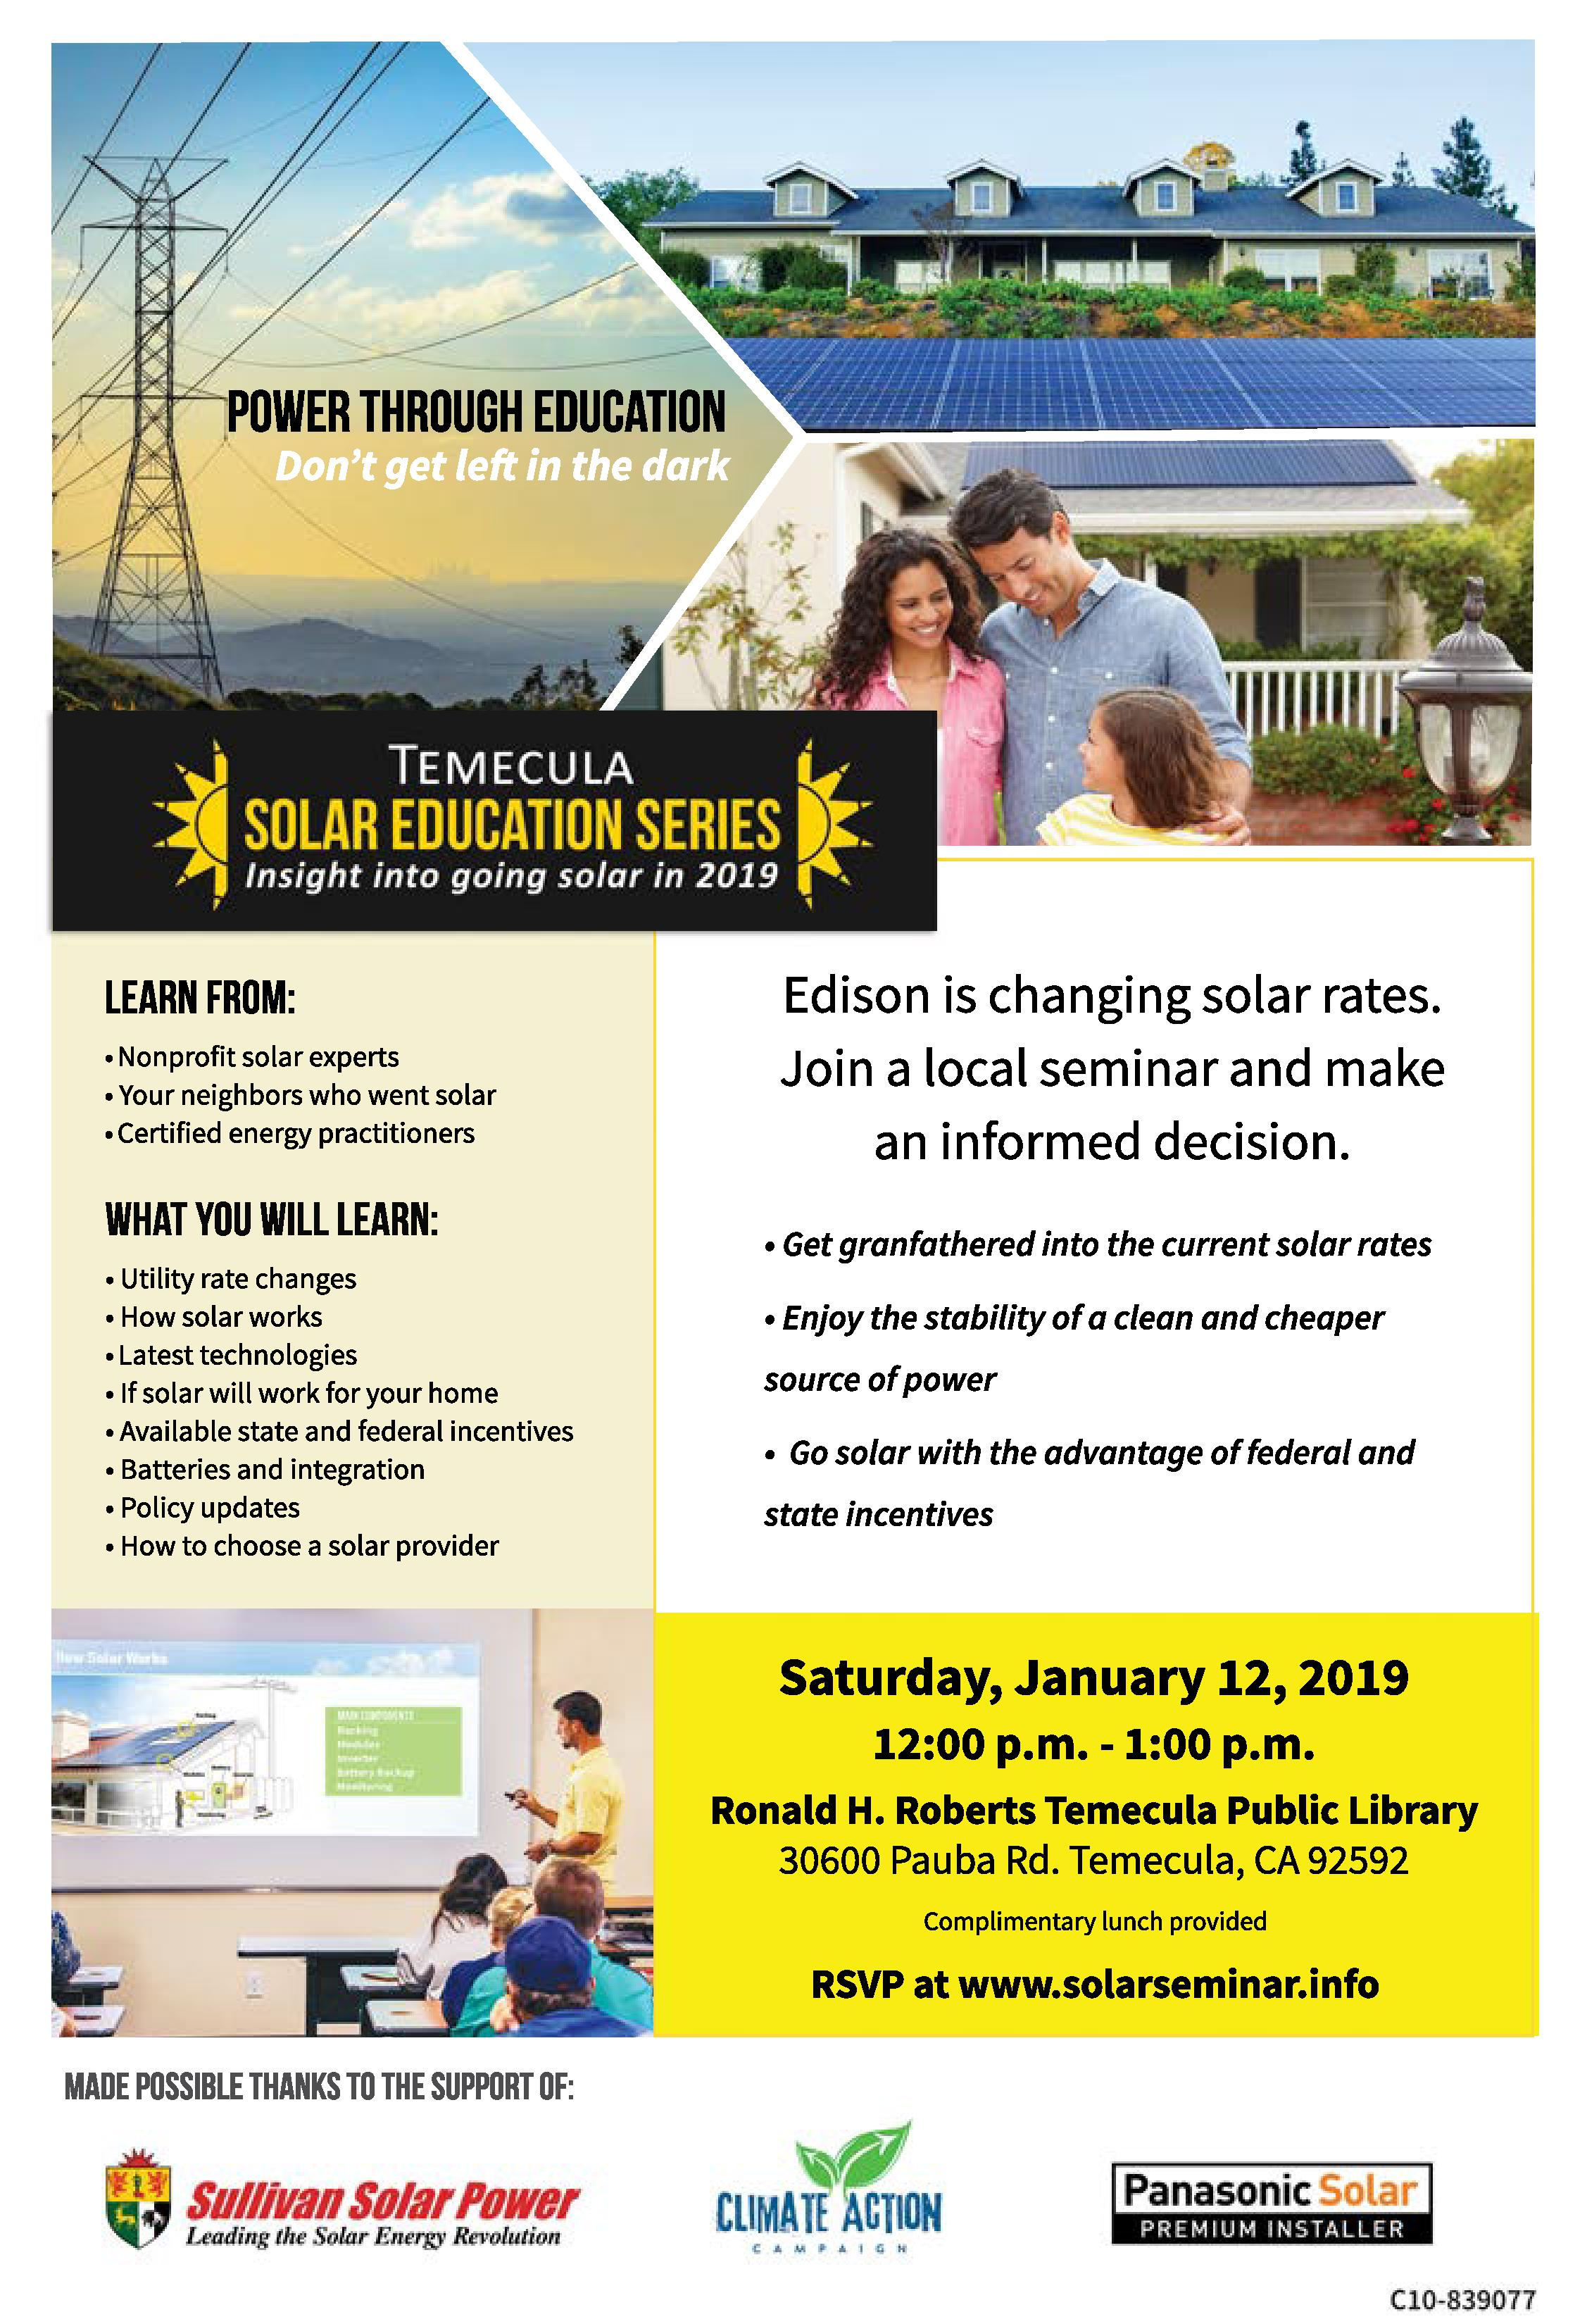 Solar-Edu-Series-2019-Temecula